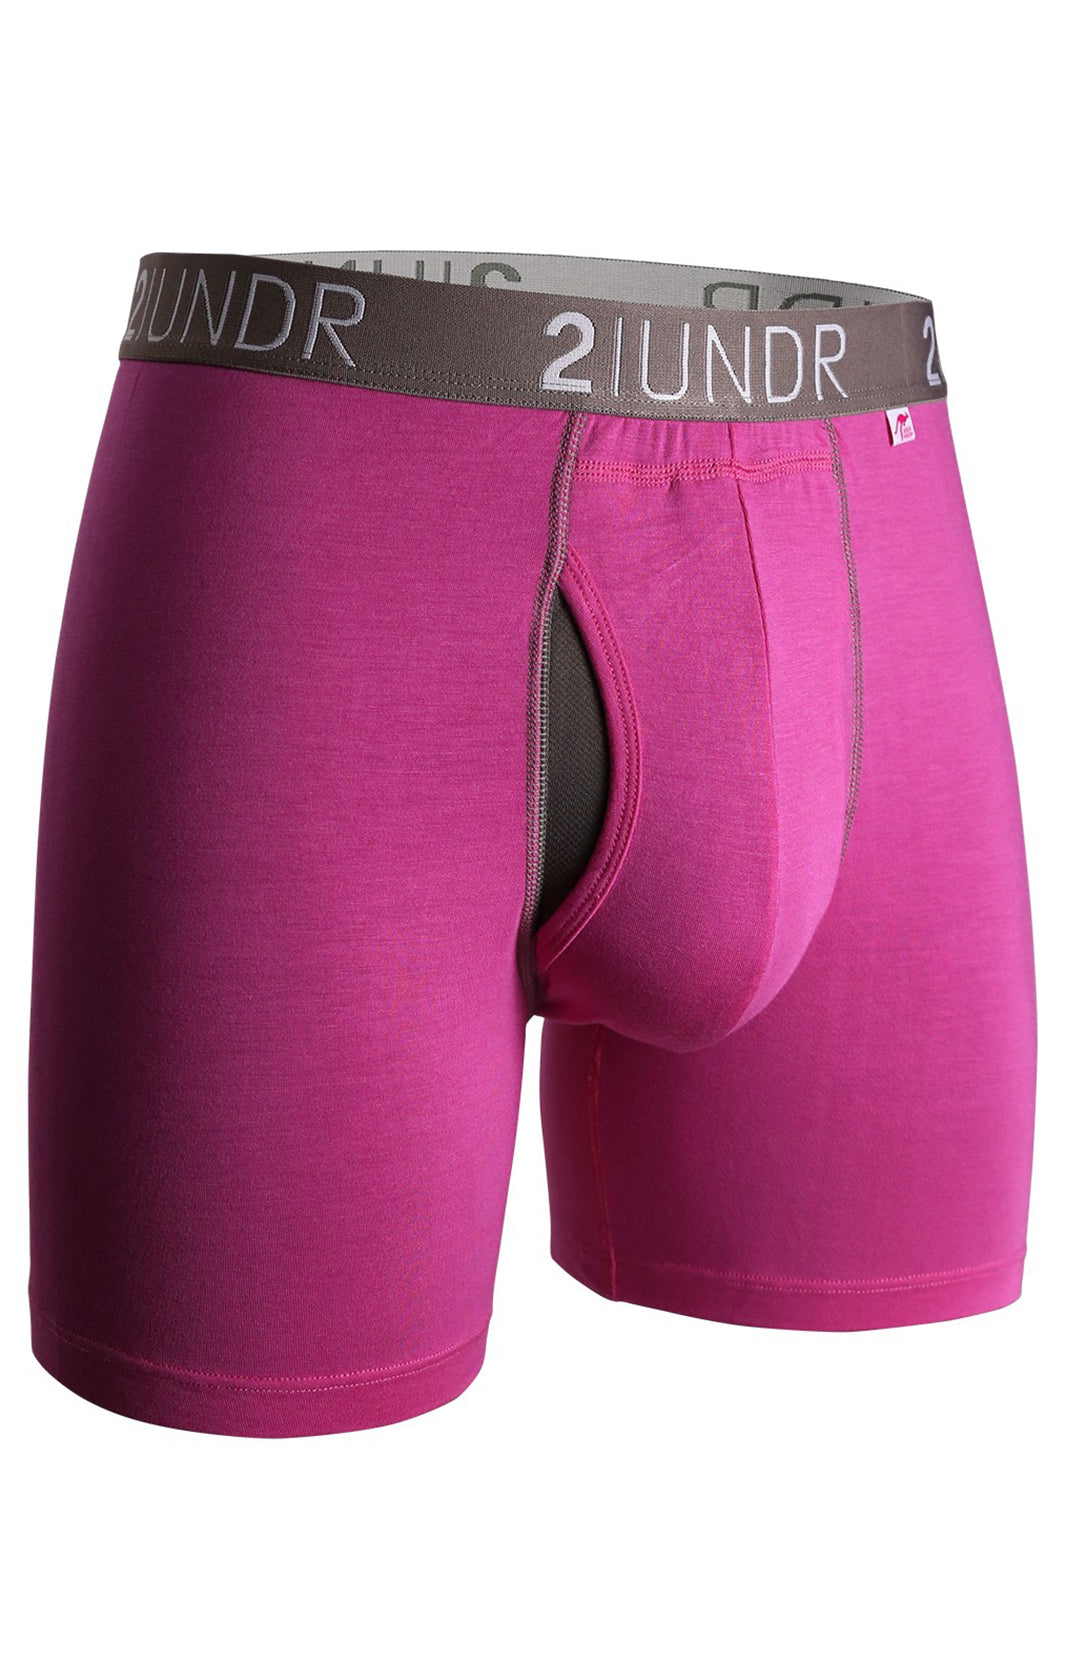 "SWING SHIFT 6"" BOXER BRIEF - PINK"